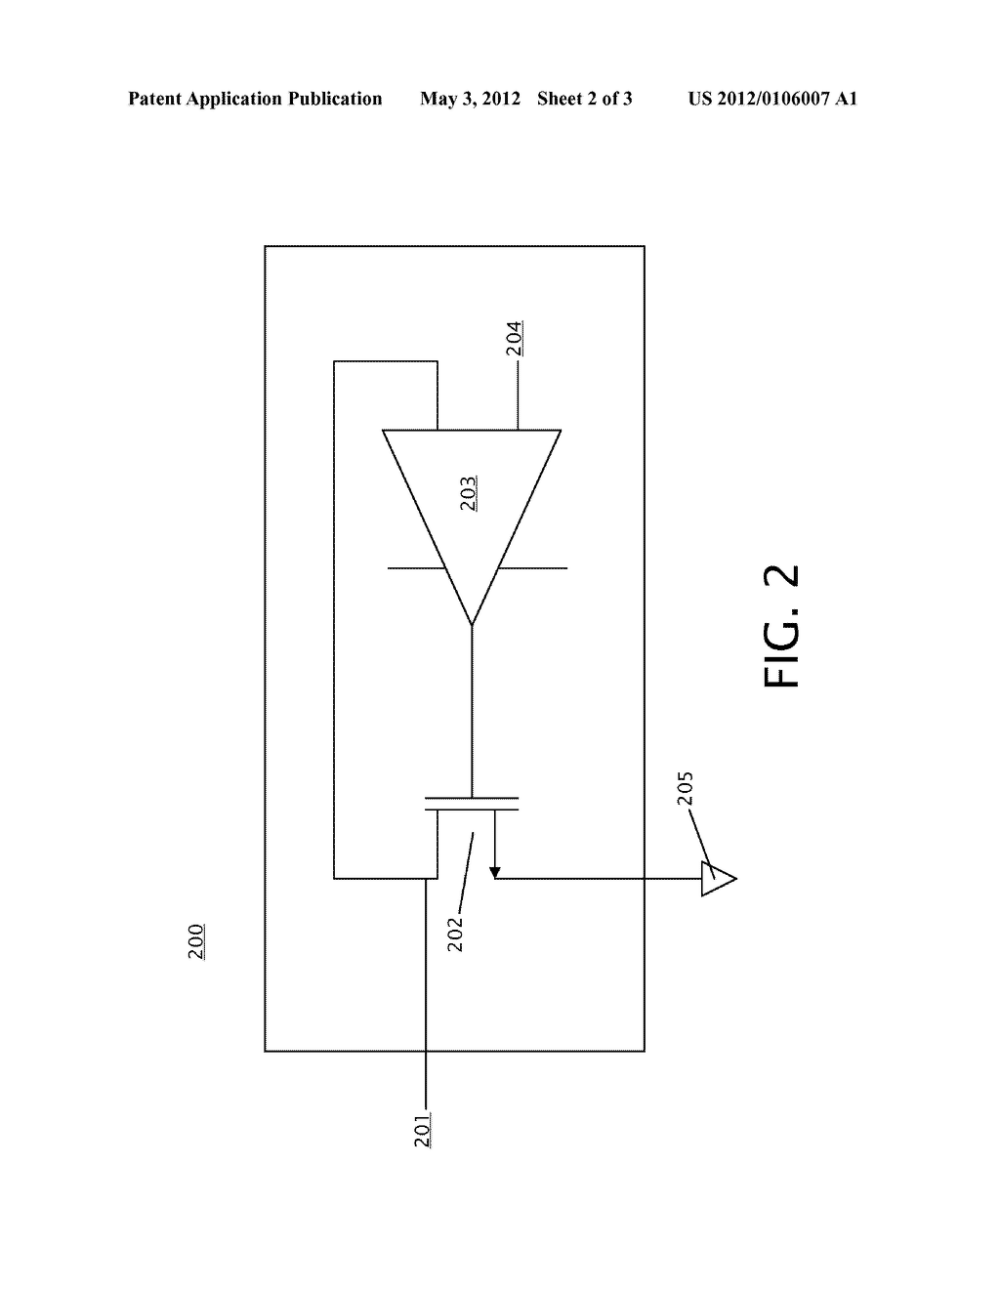 medium resolution of shunt regulator for overvoltage protection at transformer rectifier unit of electrical generating system diagram schematic and image 03